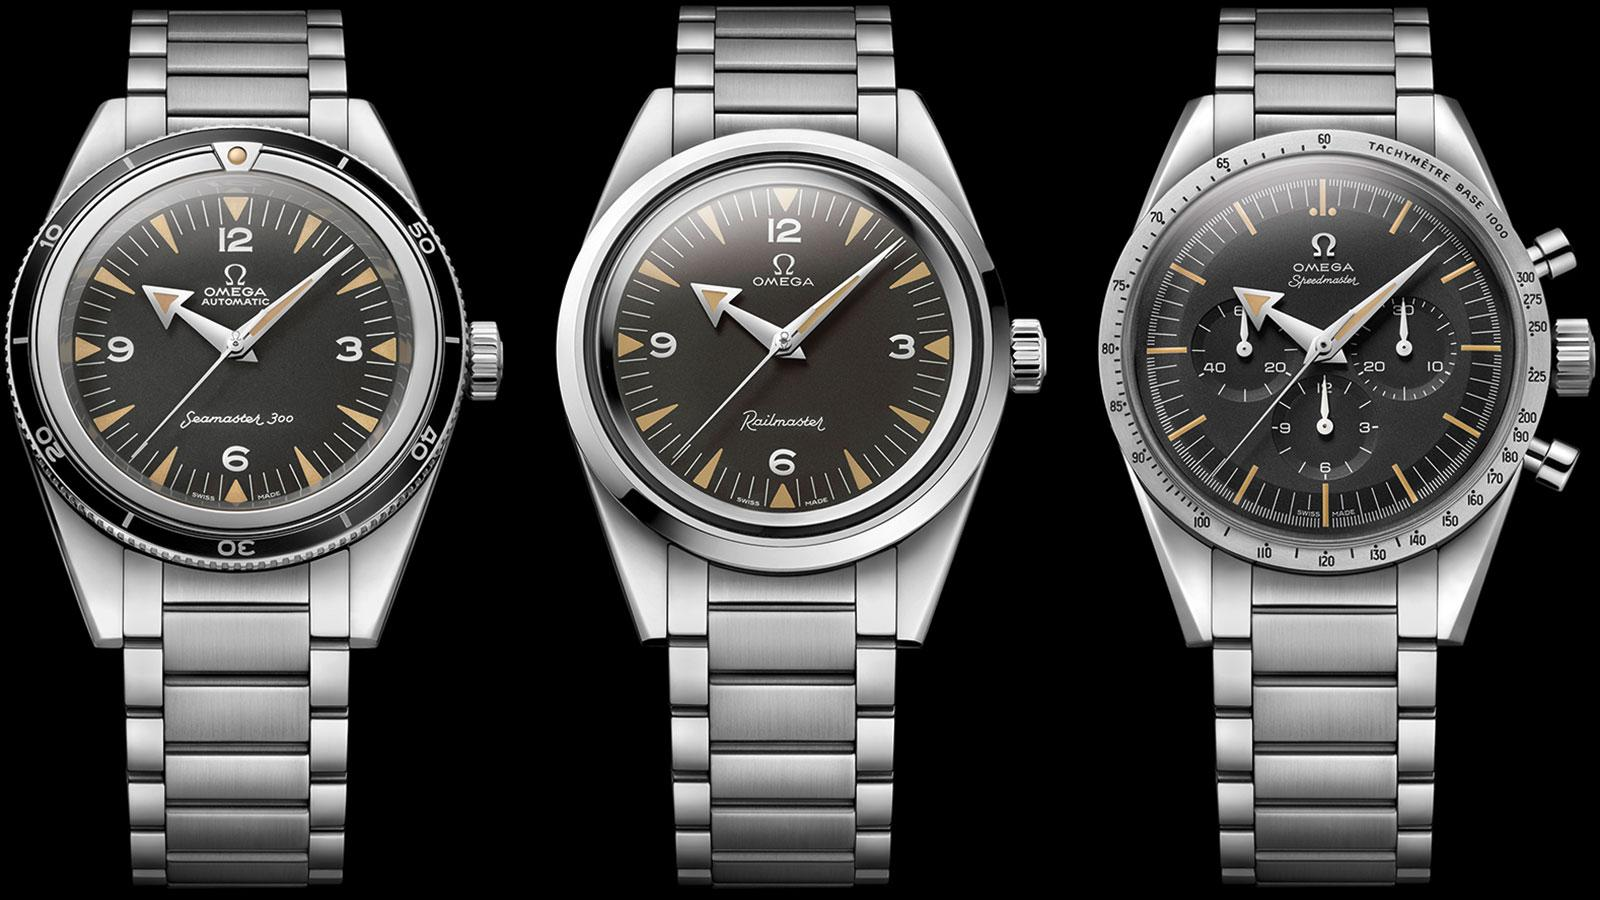 Omega is celebrating the 60th anniversary of three historic models with limited-edition recreations. From left: the Seamaster 300, Railmaster and Speedmaster.